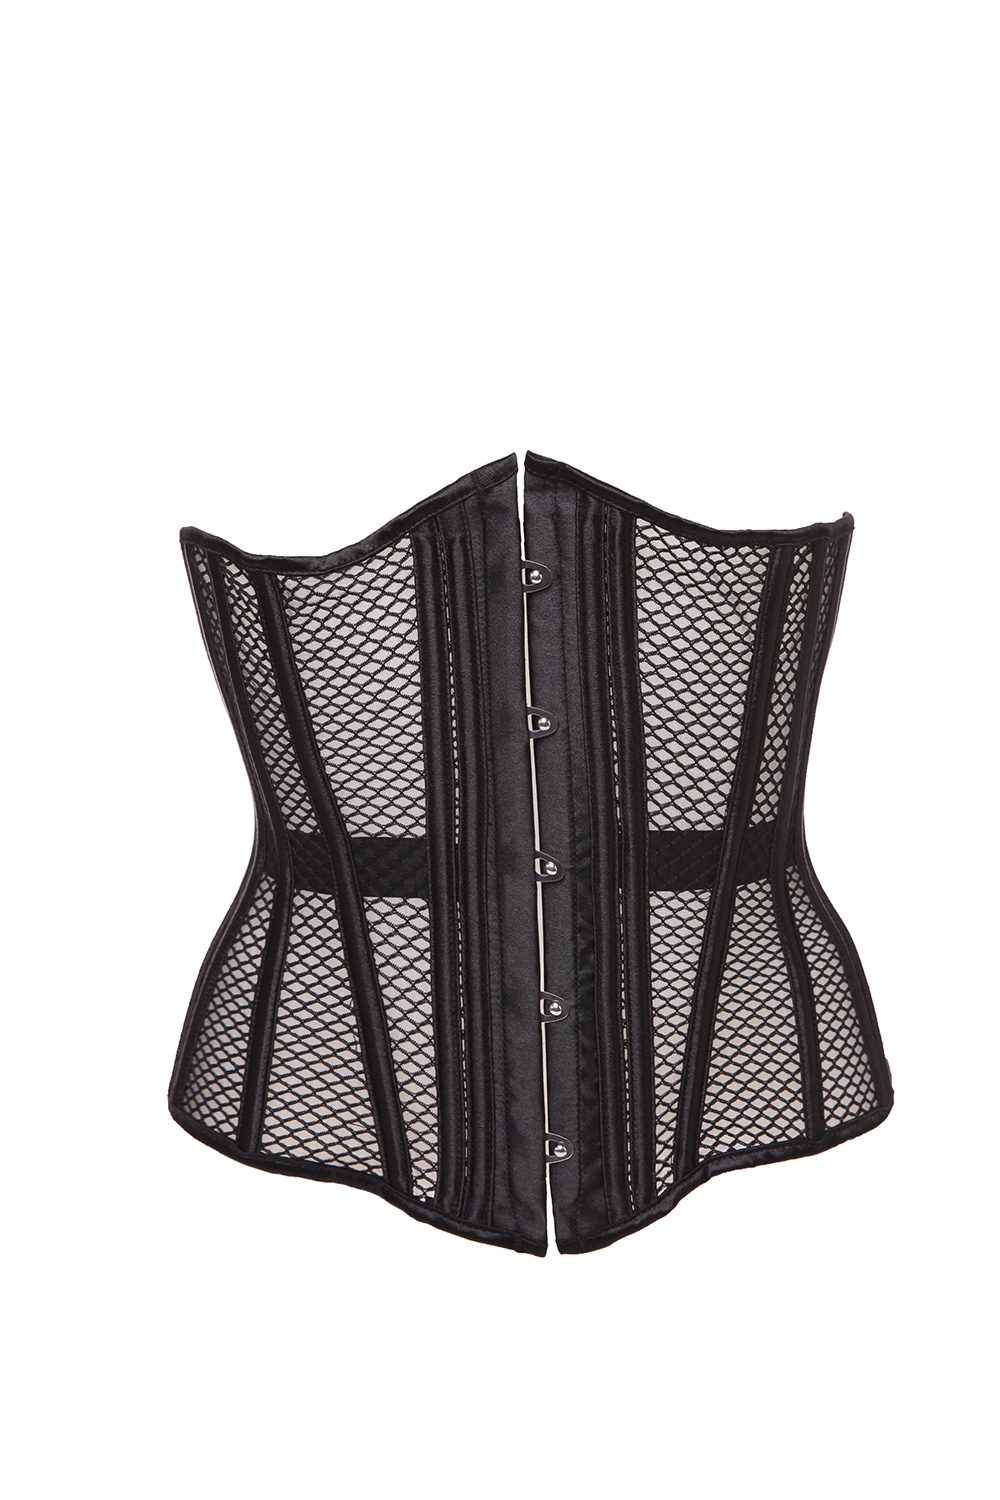 free shipping Summer Women Body Shaper   Bustiers   &   Corsets   Mesh Net Intimates Shapewear Steel Boned Hollow Out   Corset   QF931